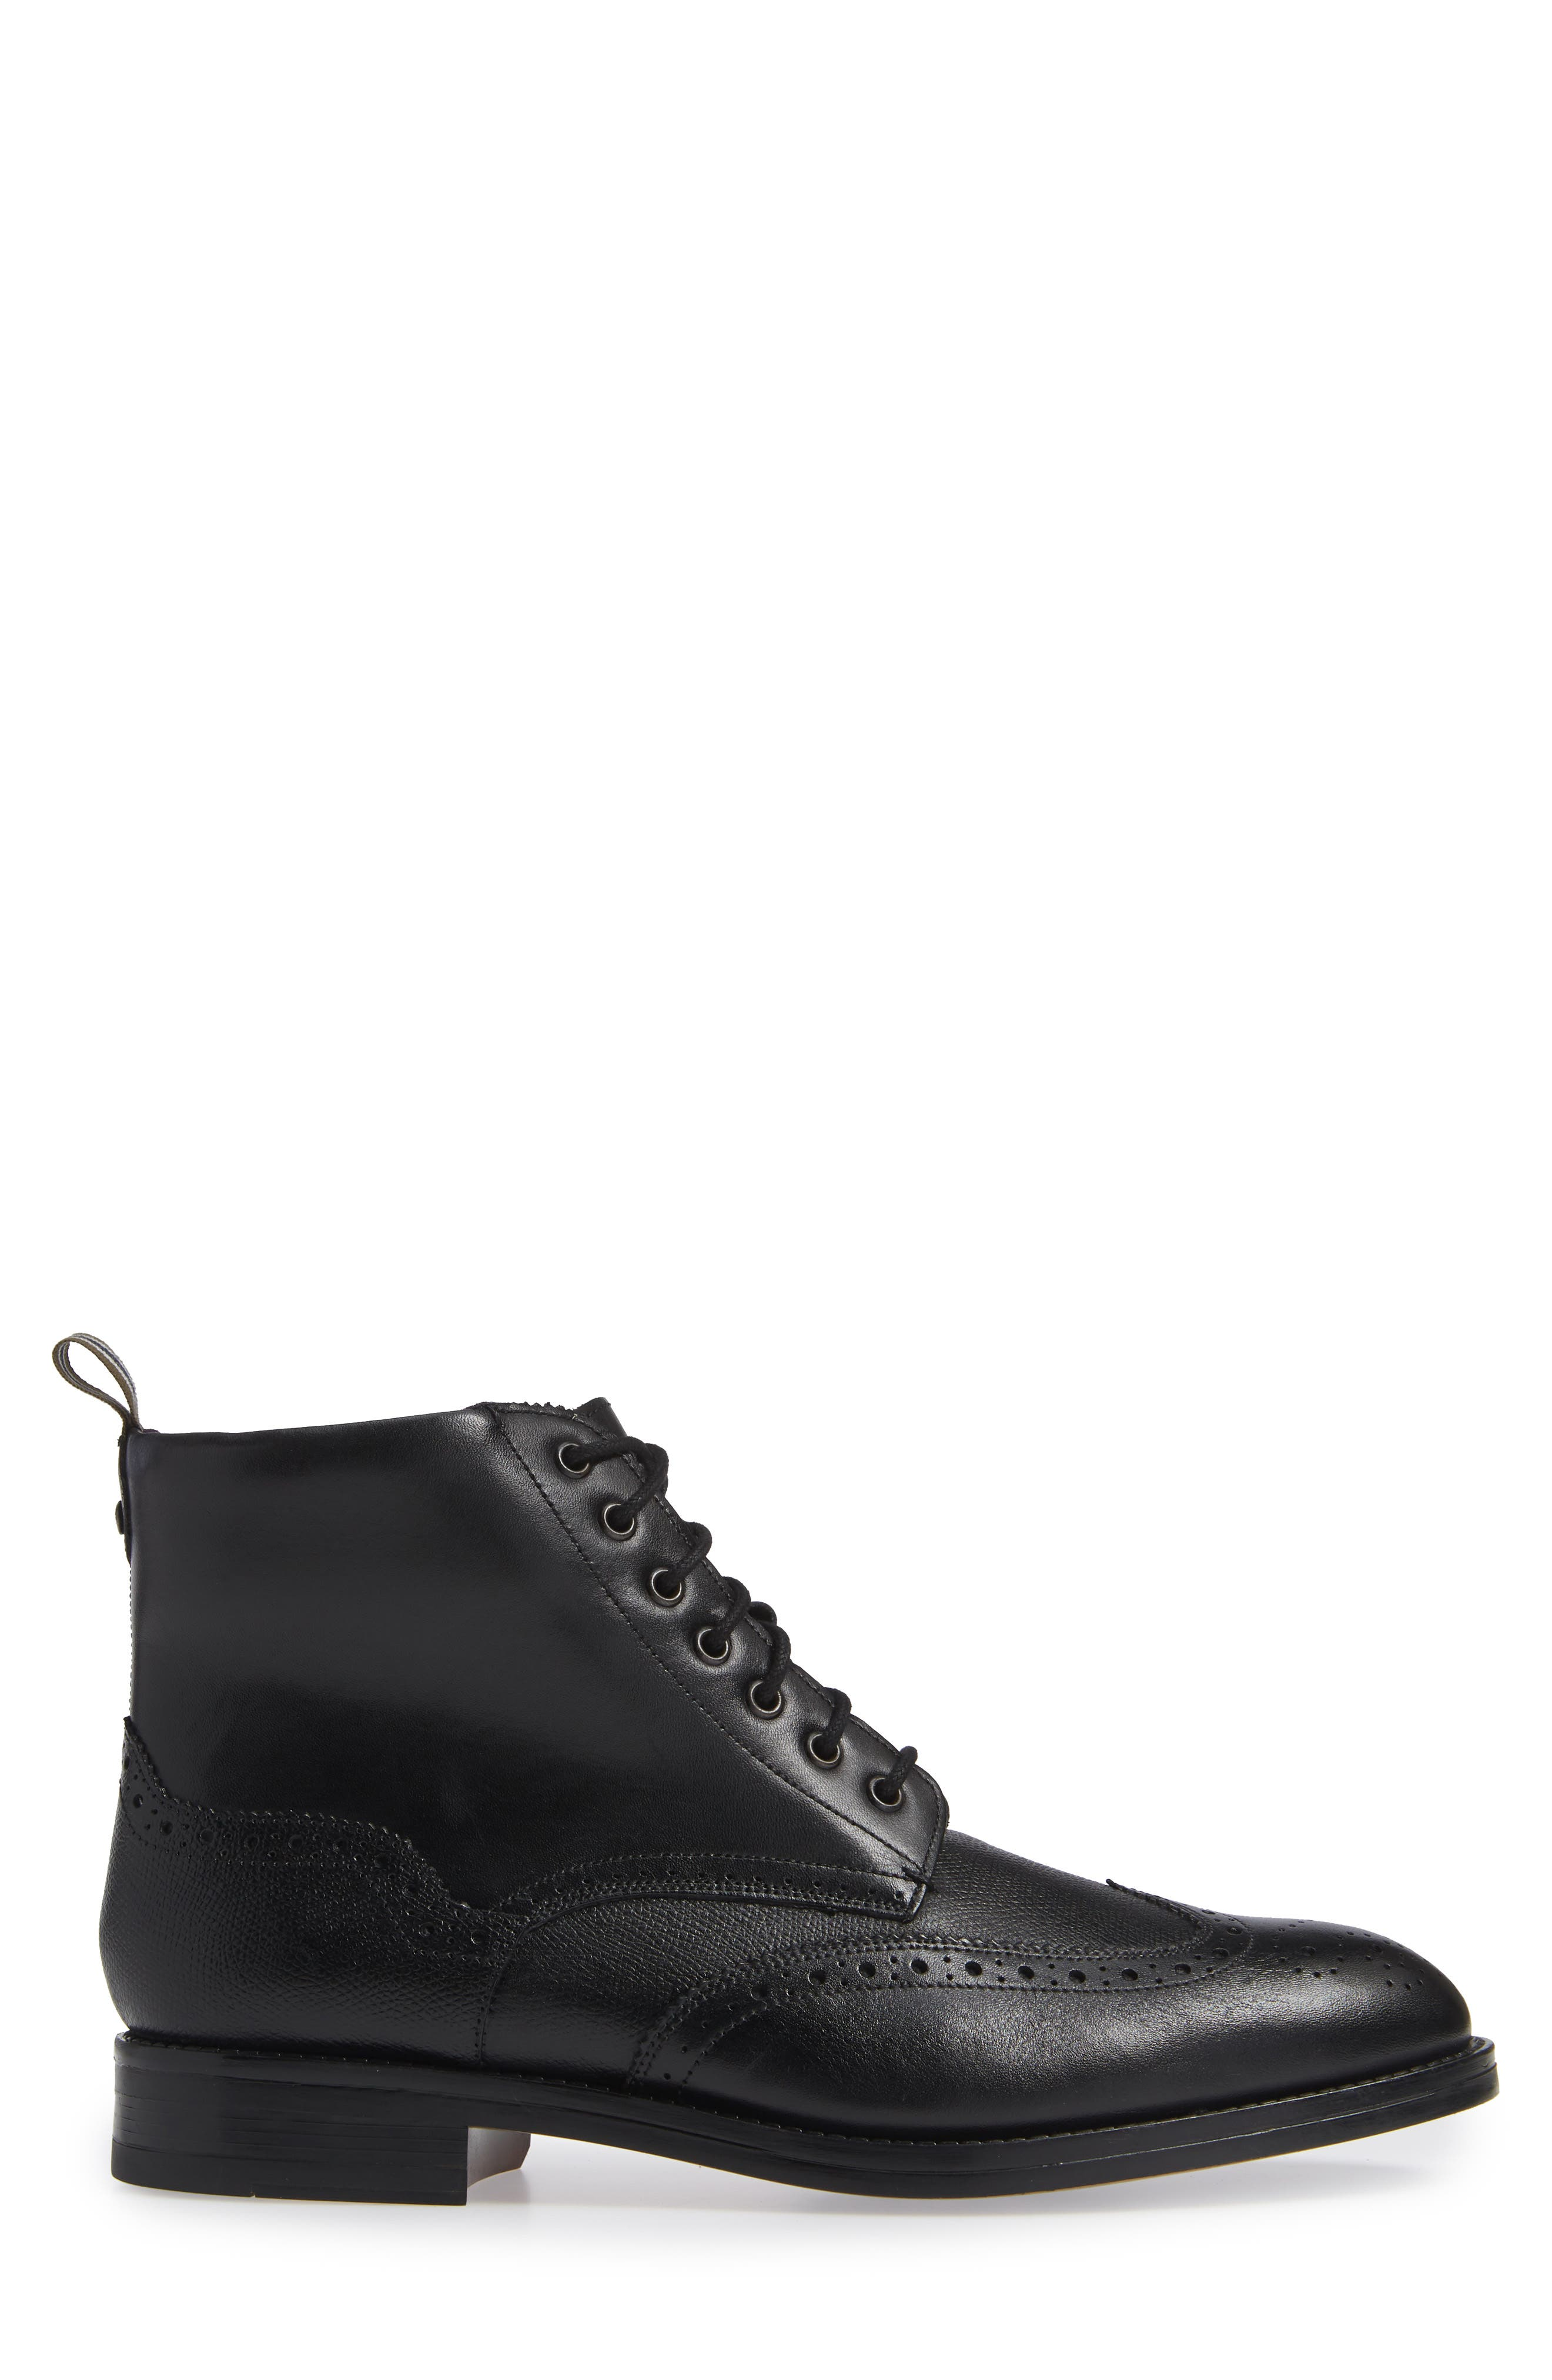 TED BAKER LONDON, Twrens Wingtip Boot, Alternate thumbnail 3, color, BLACK LEATHER